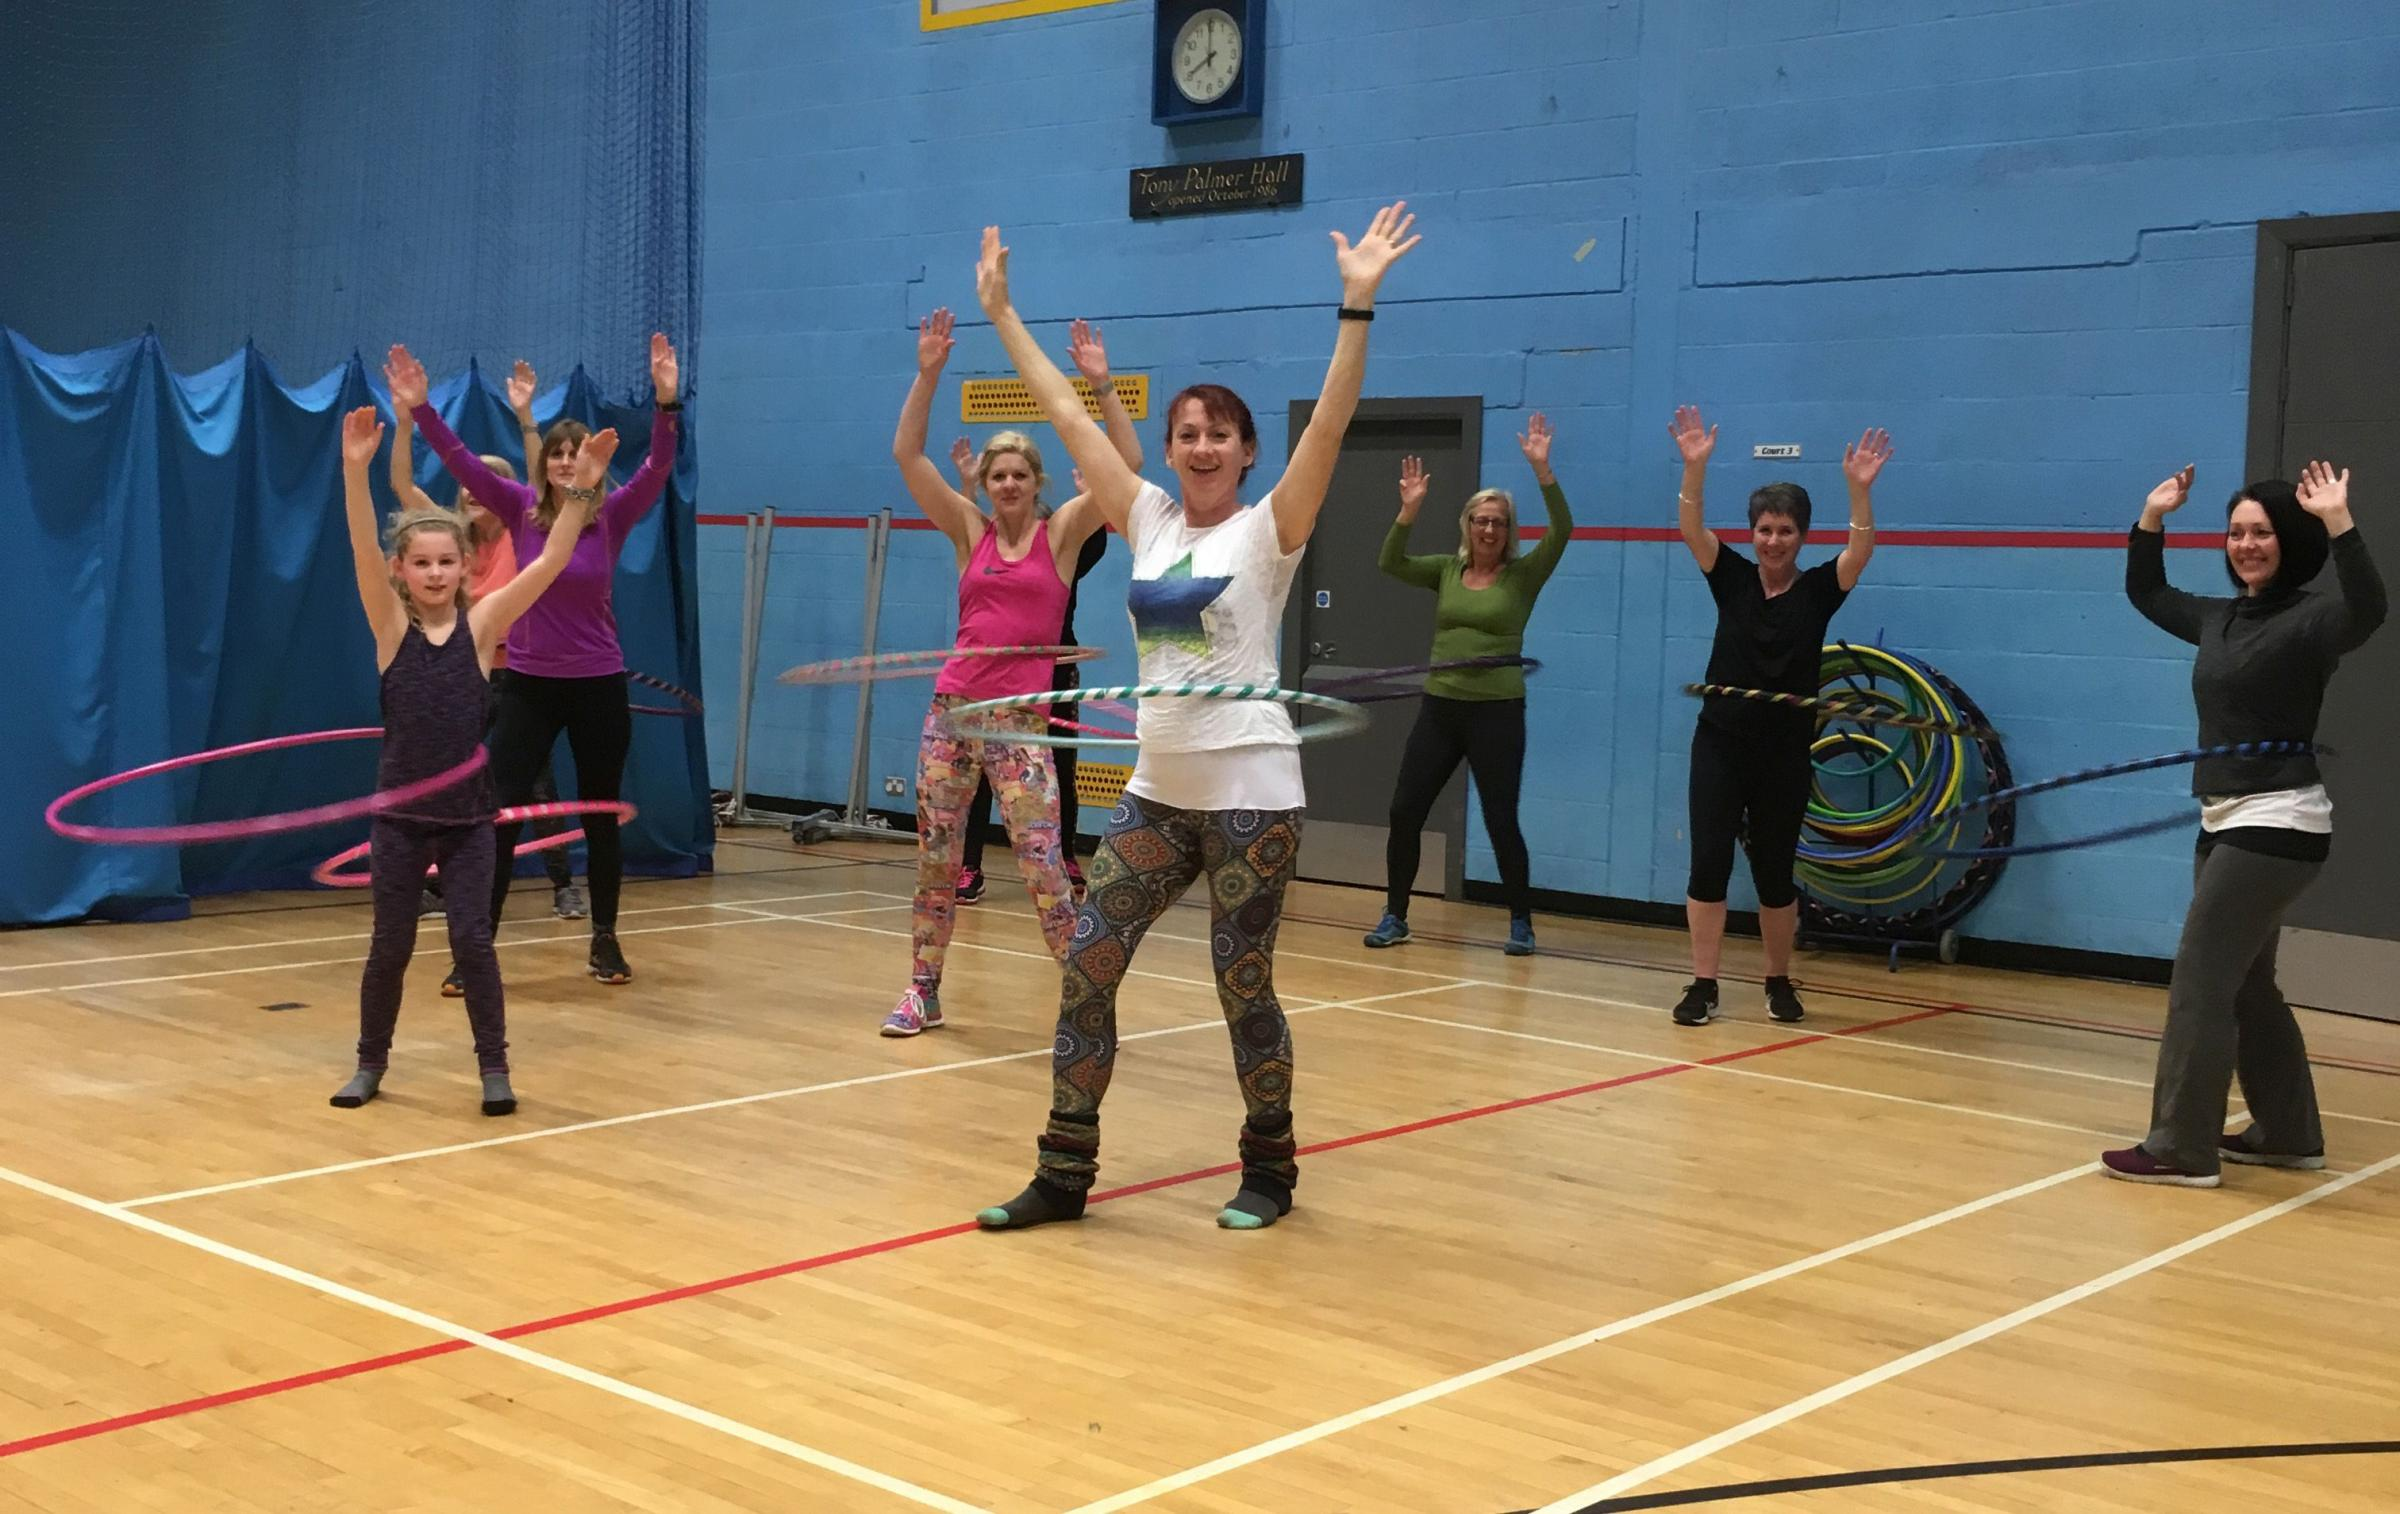 SUCCESSFUL: Debbie's first hula hoopathon in aid of The Living Tree